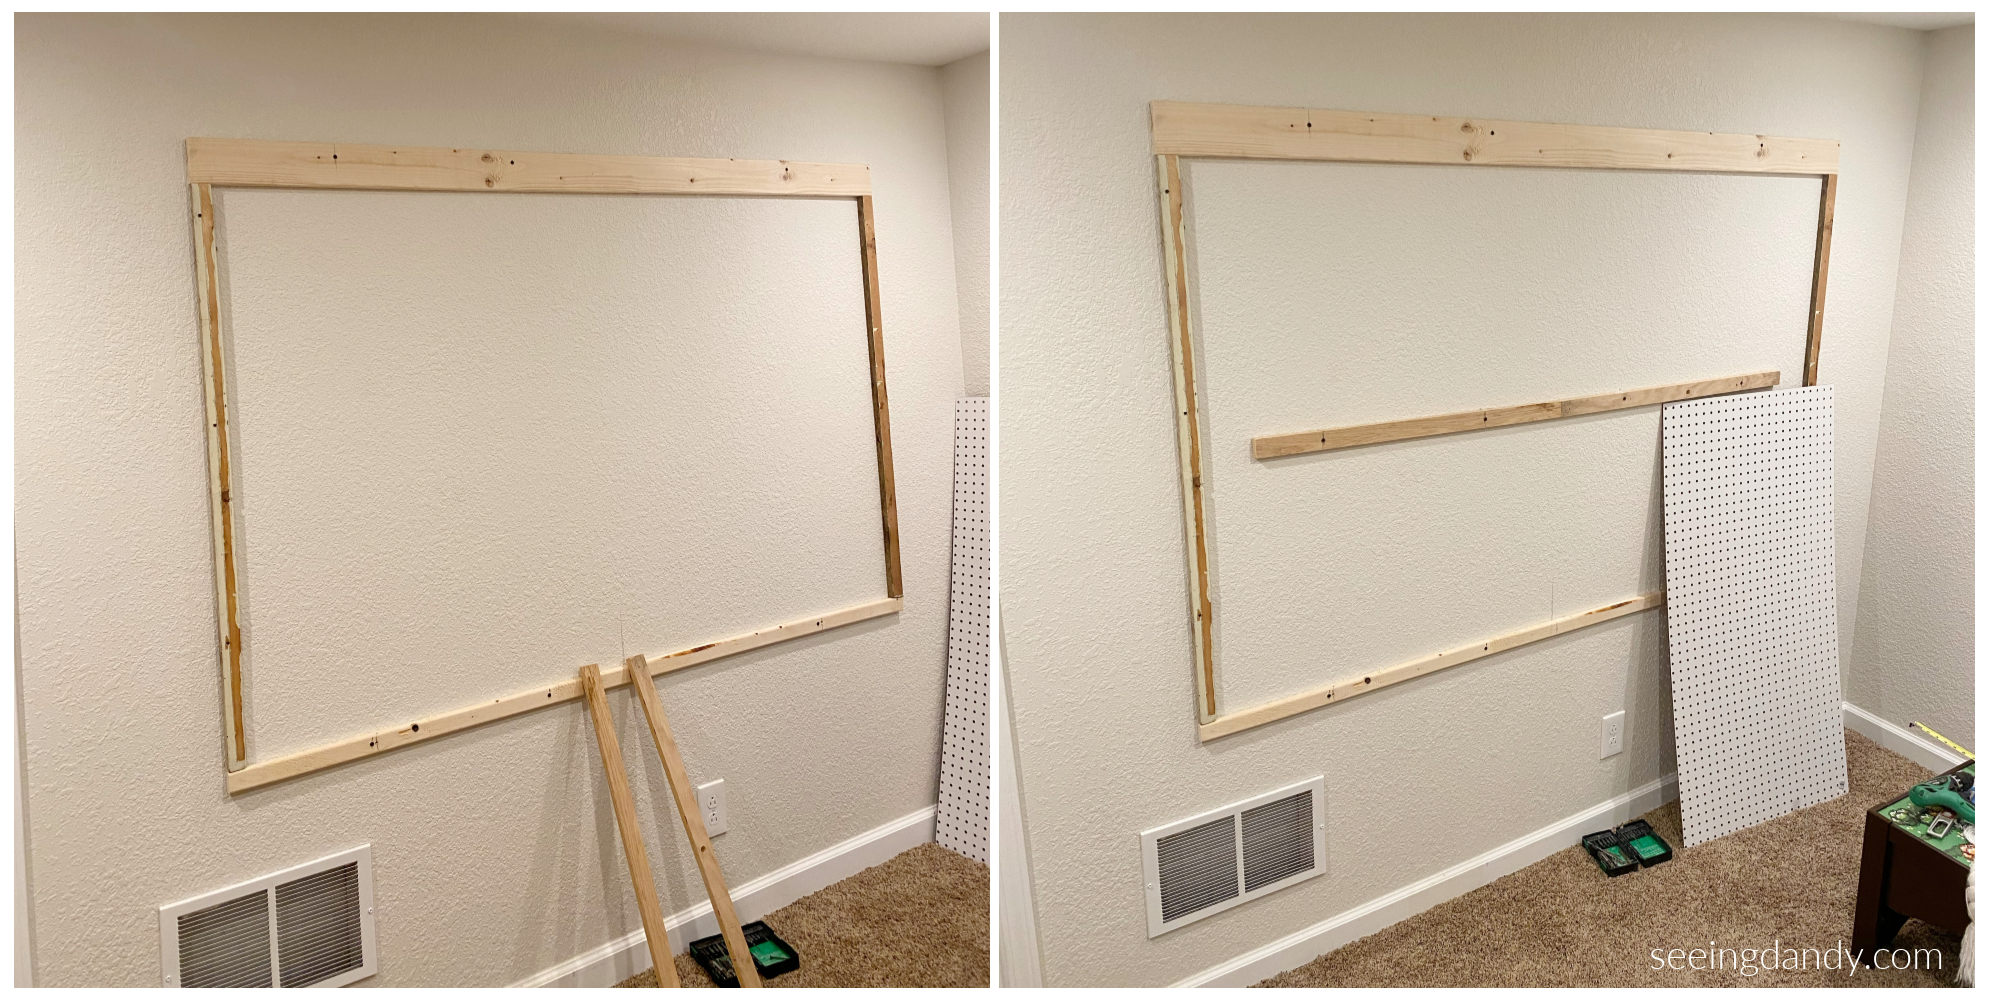 Framing nerf gun storage wall